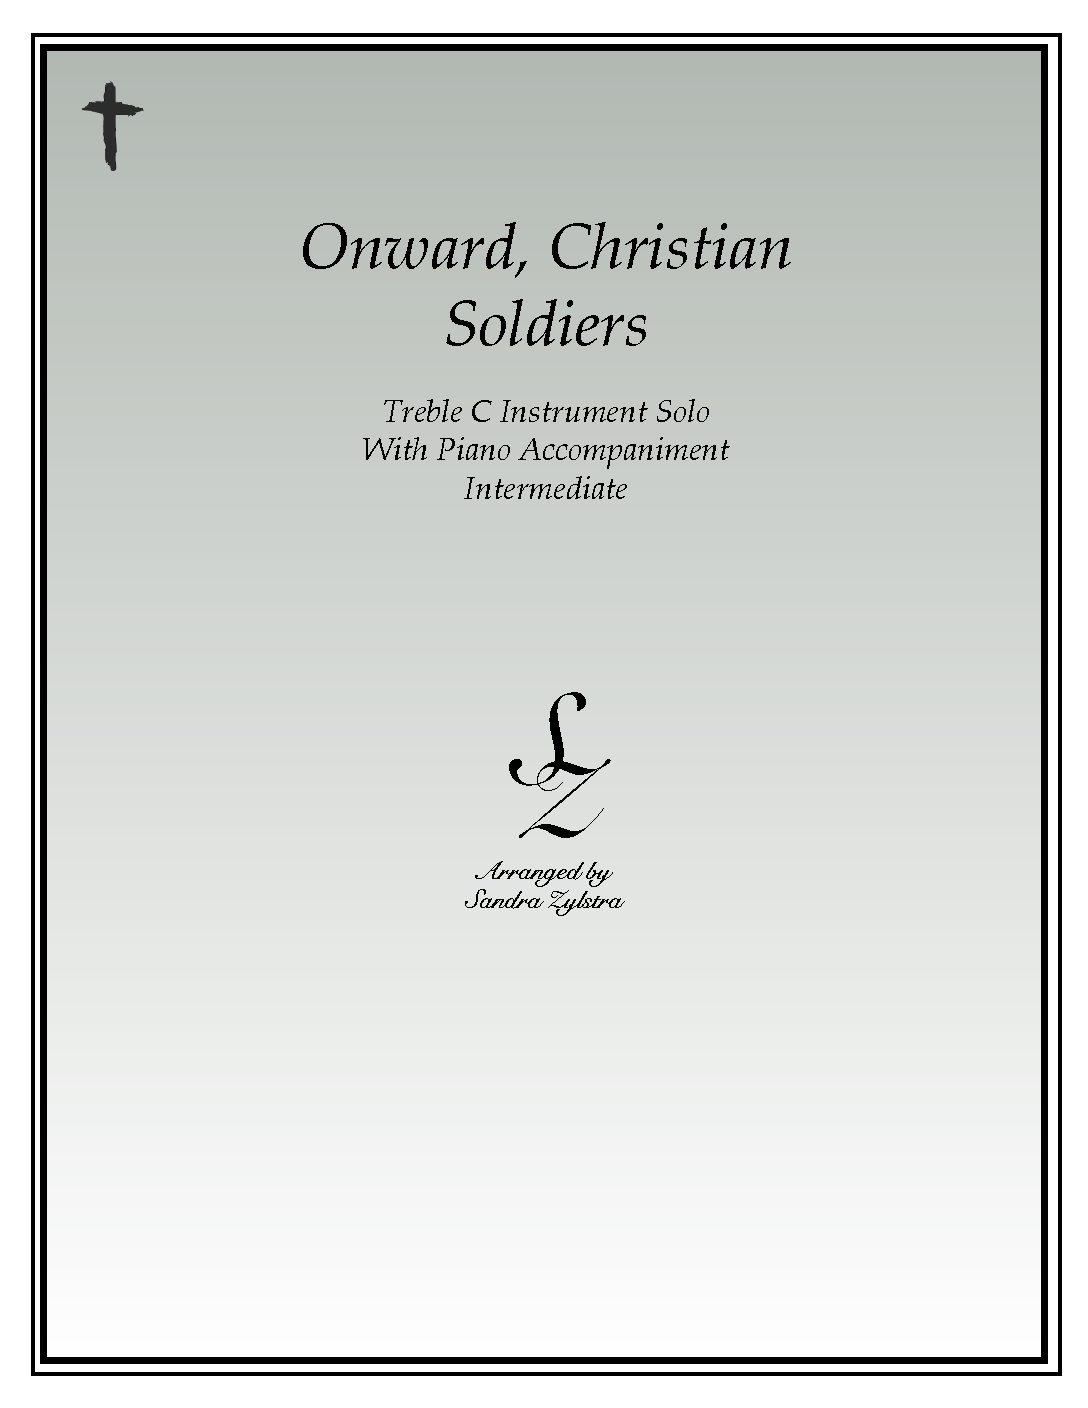 IS 49 Onward Christian Soldiers 04 Treble C pdf